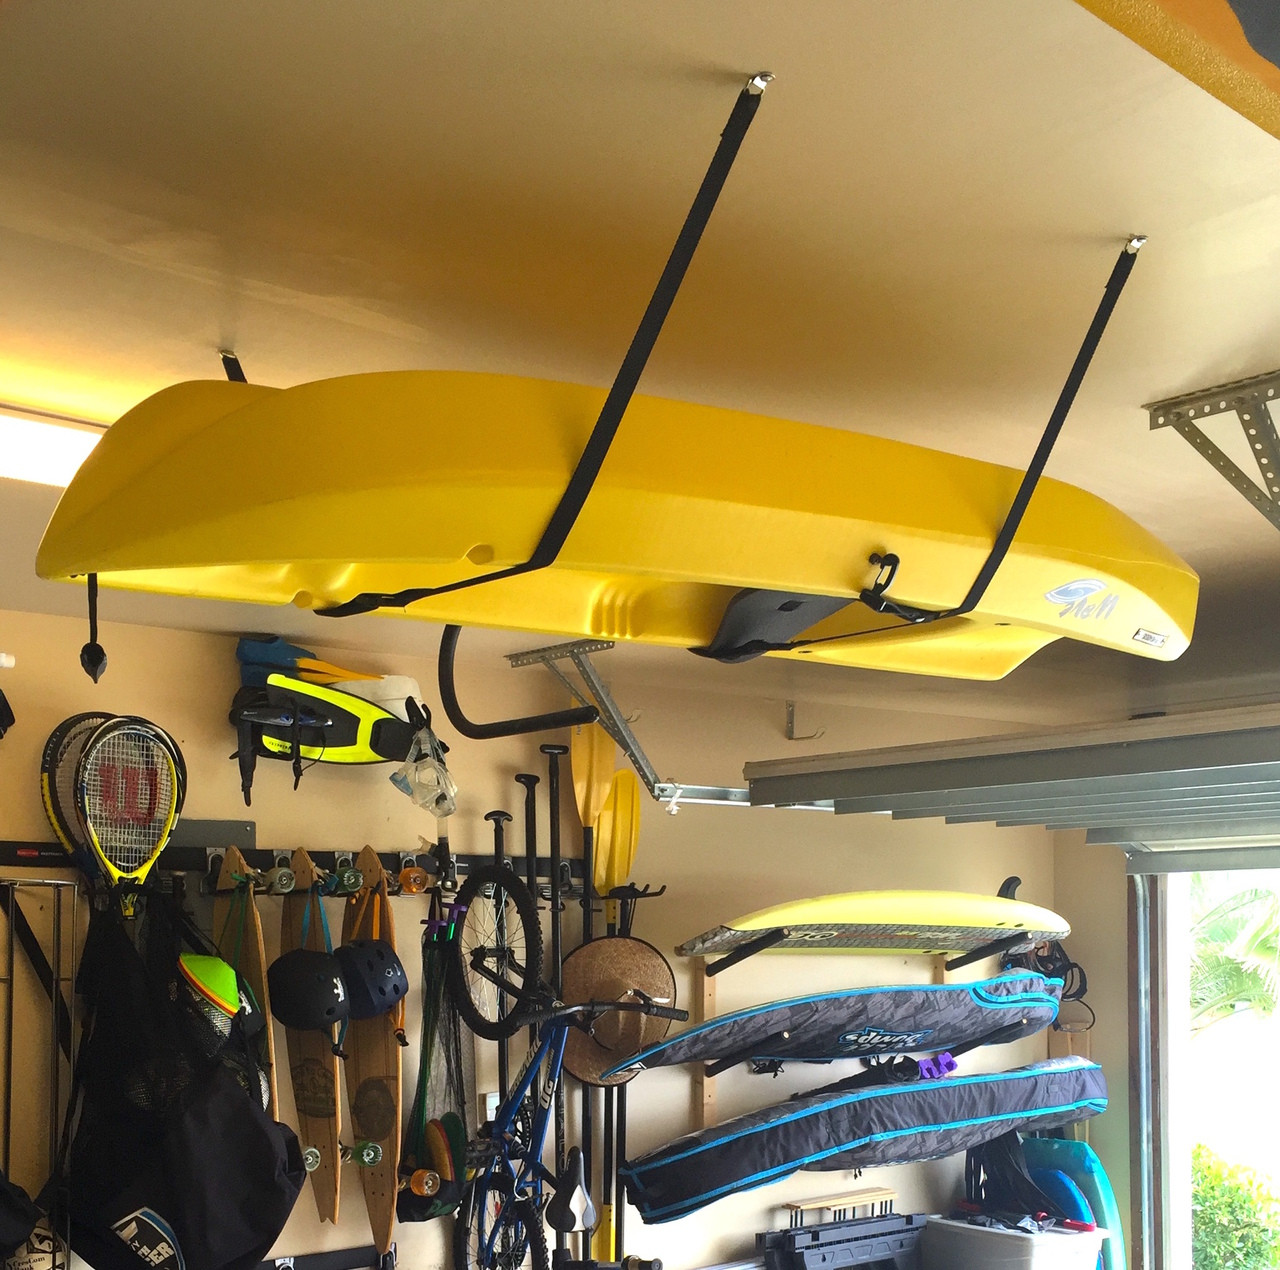 rack outdoors kayak com dp overhead ceiling sports system lift garage storage amazon hoist rope canoe